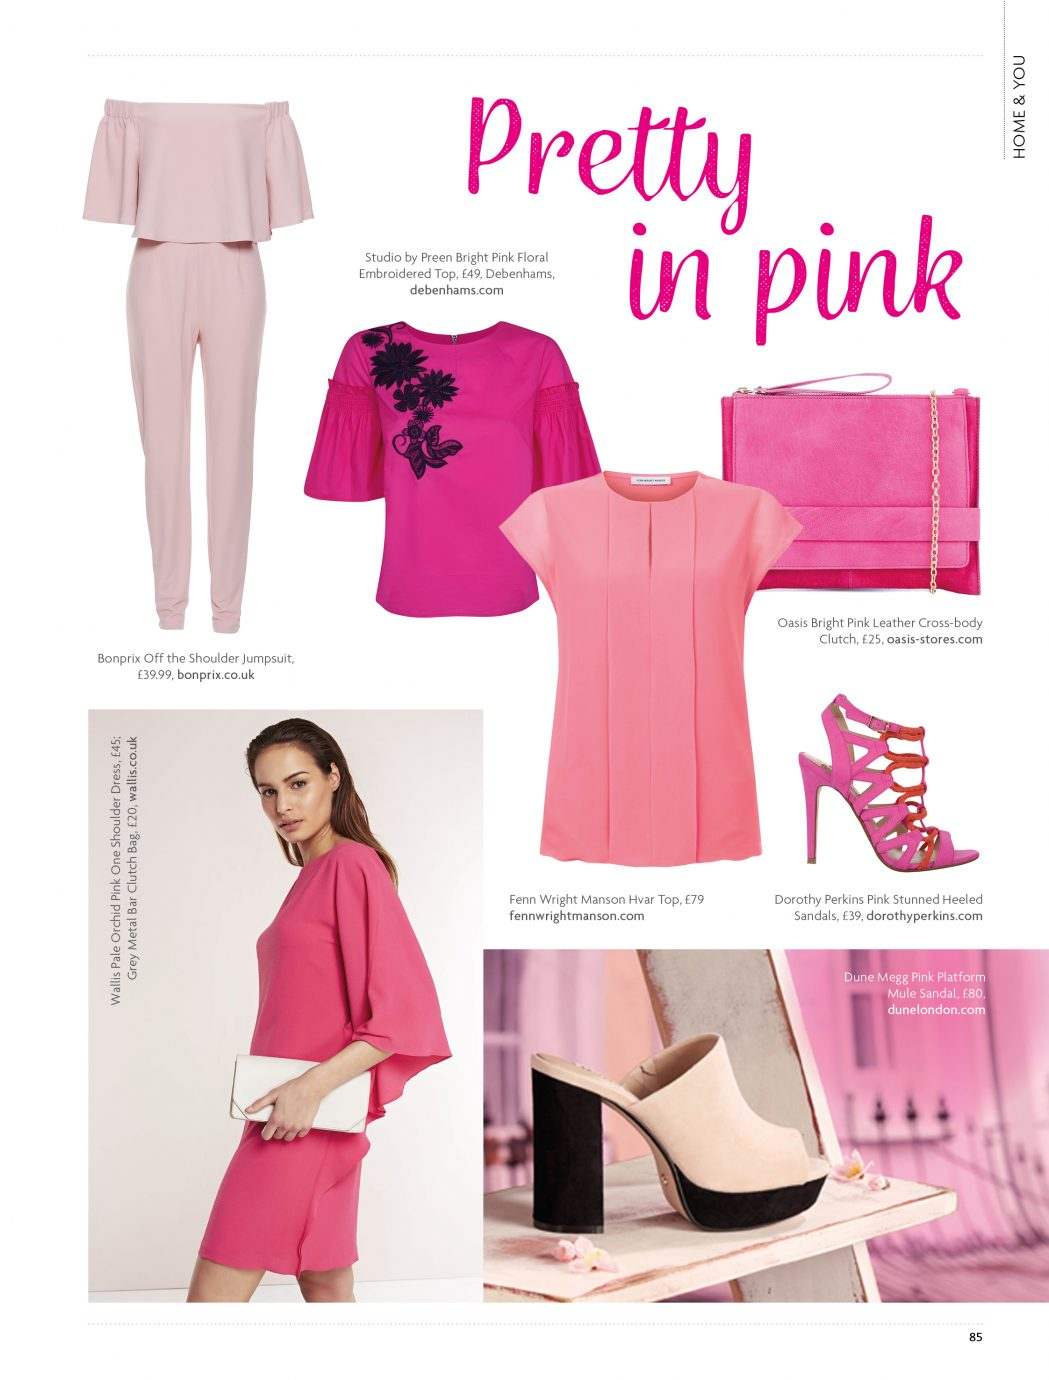 Pretty in pink...